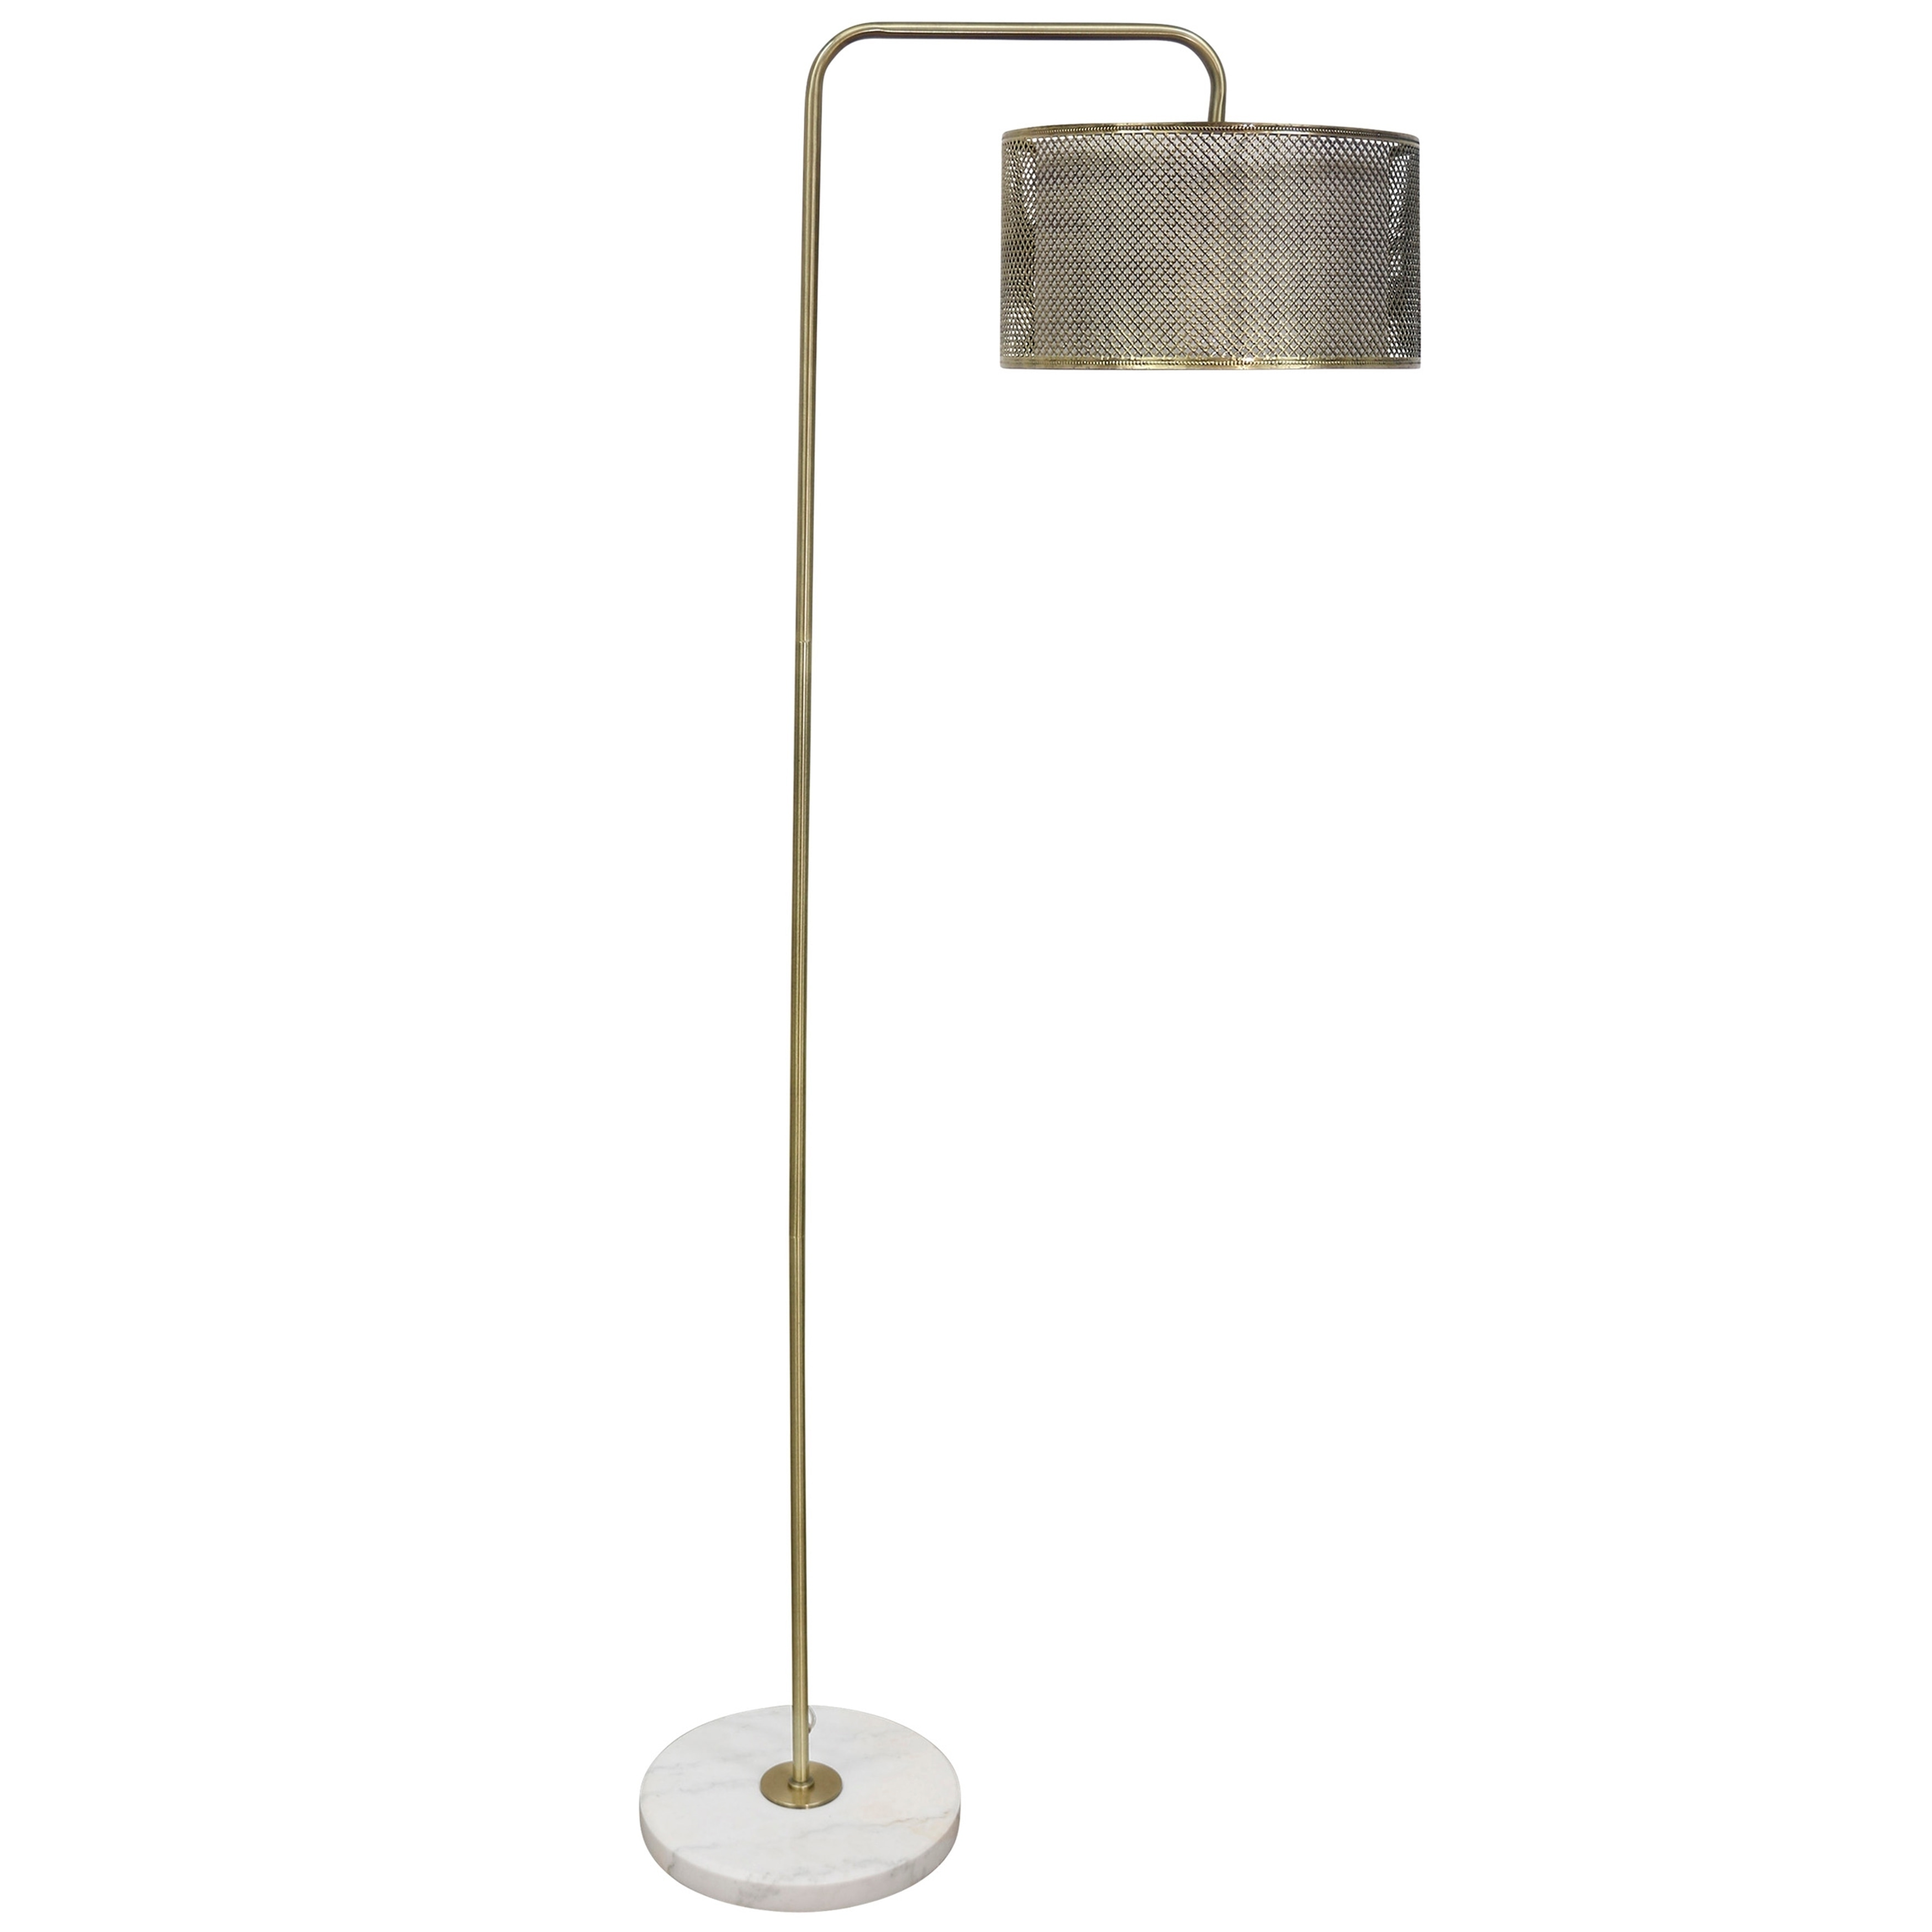 Hastings Brass Extended Arm Floor Lamp With Marble Base Diamond Pattern Mesh Metal With Inner Fabric Shade White Brass Floor Lamp Floor Lamp Cool Floor Lamps